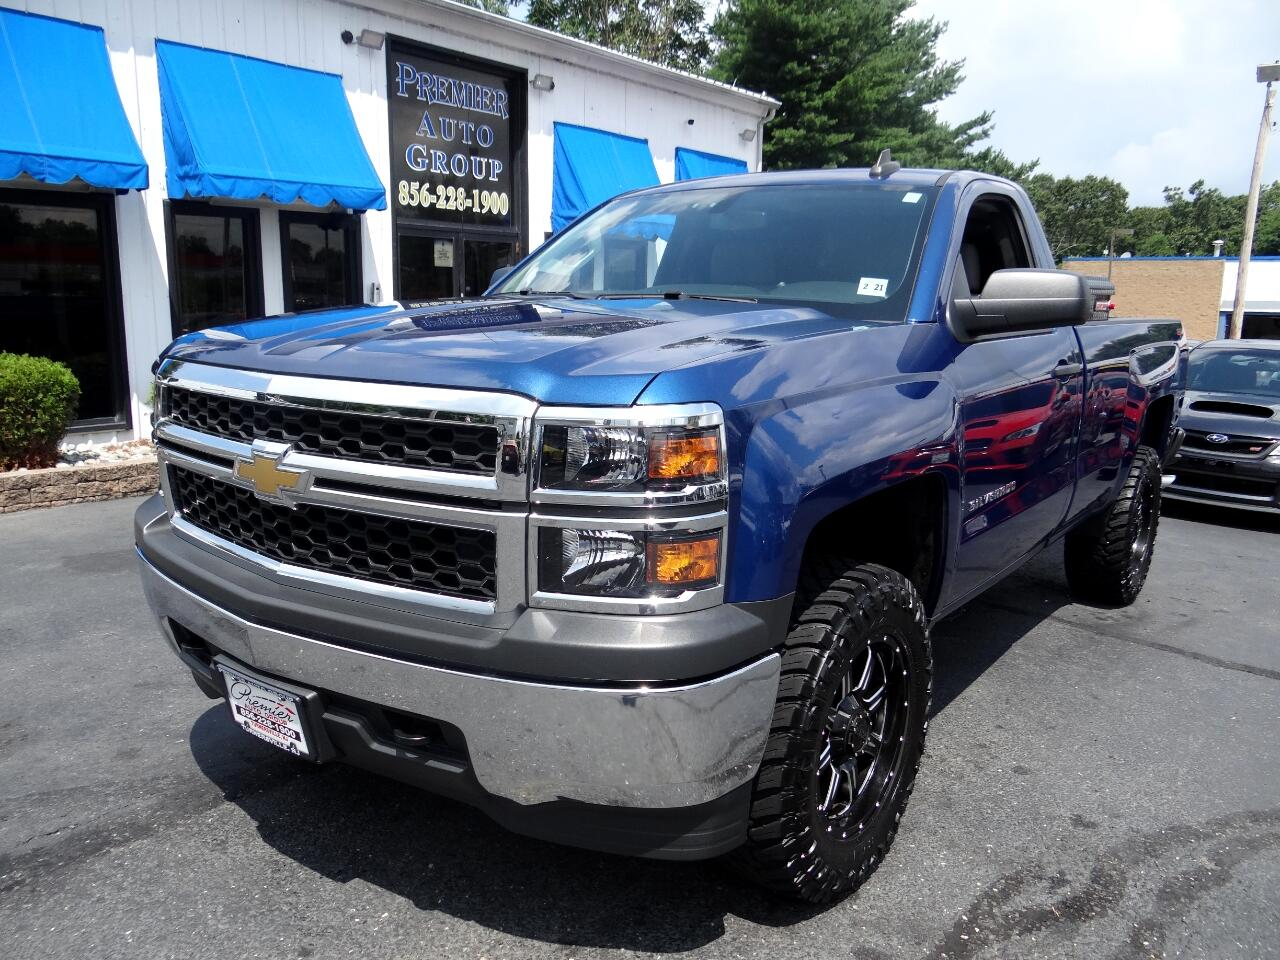 2015 Chevrolet Silverado 1500 2LT Regular Cab Long Box 4WD